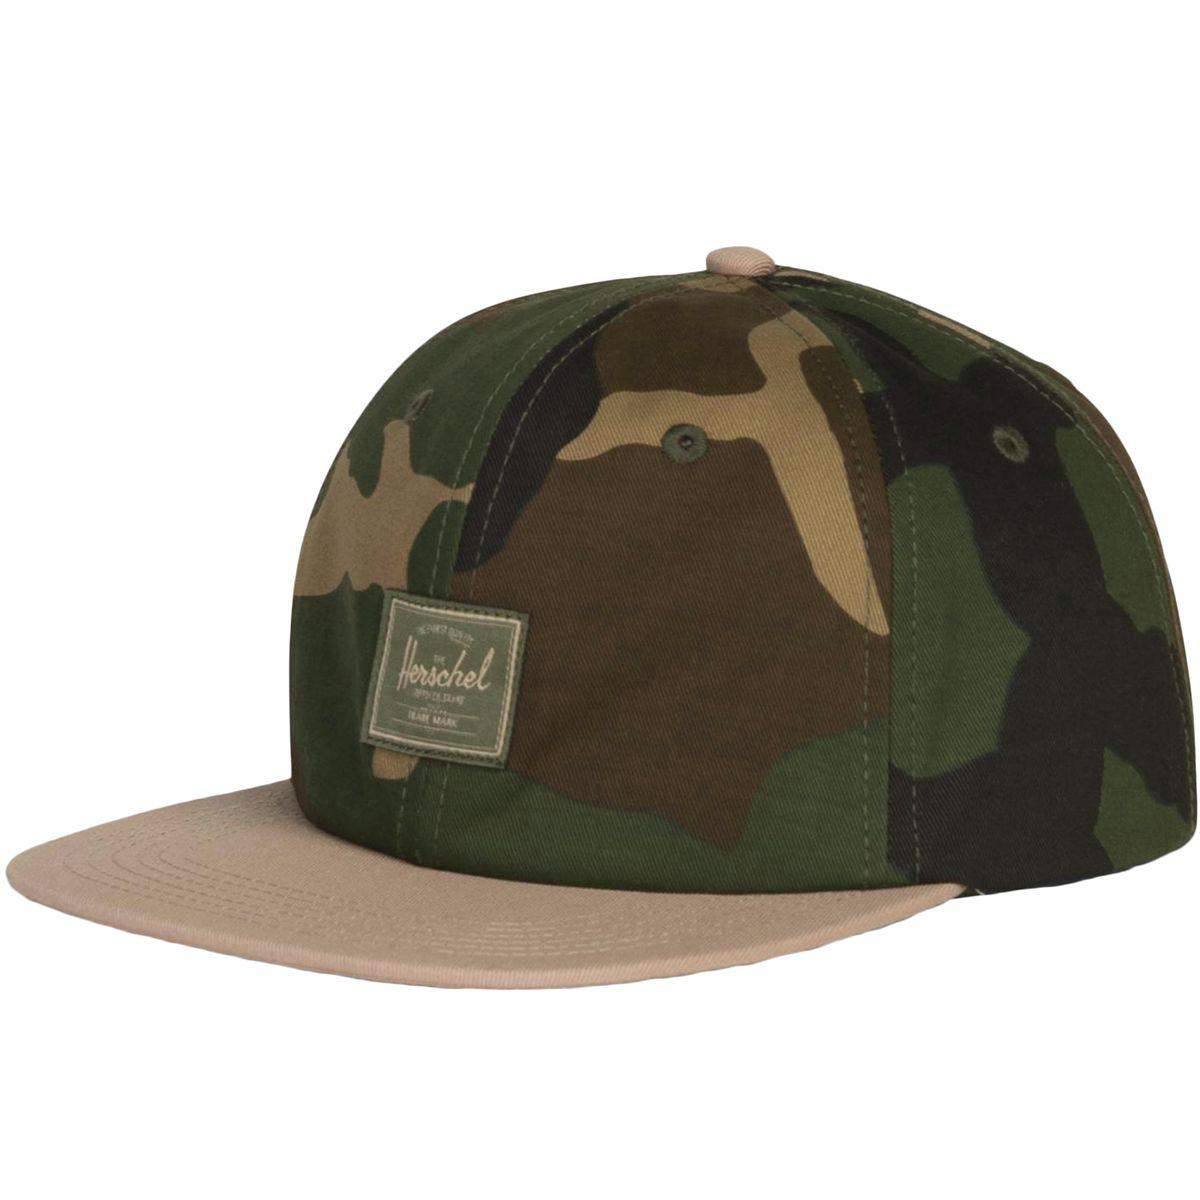 00072cdf61c Lyst - Herschel Supply Co. Albert Snapback Hat in Green for Men